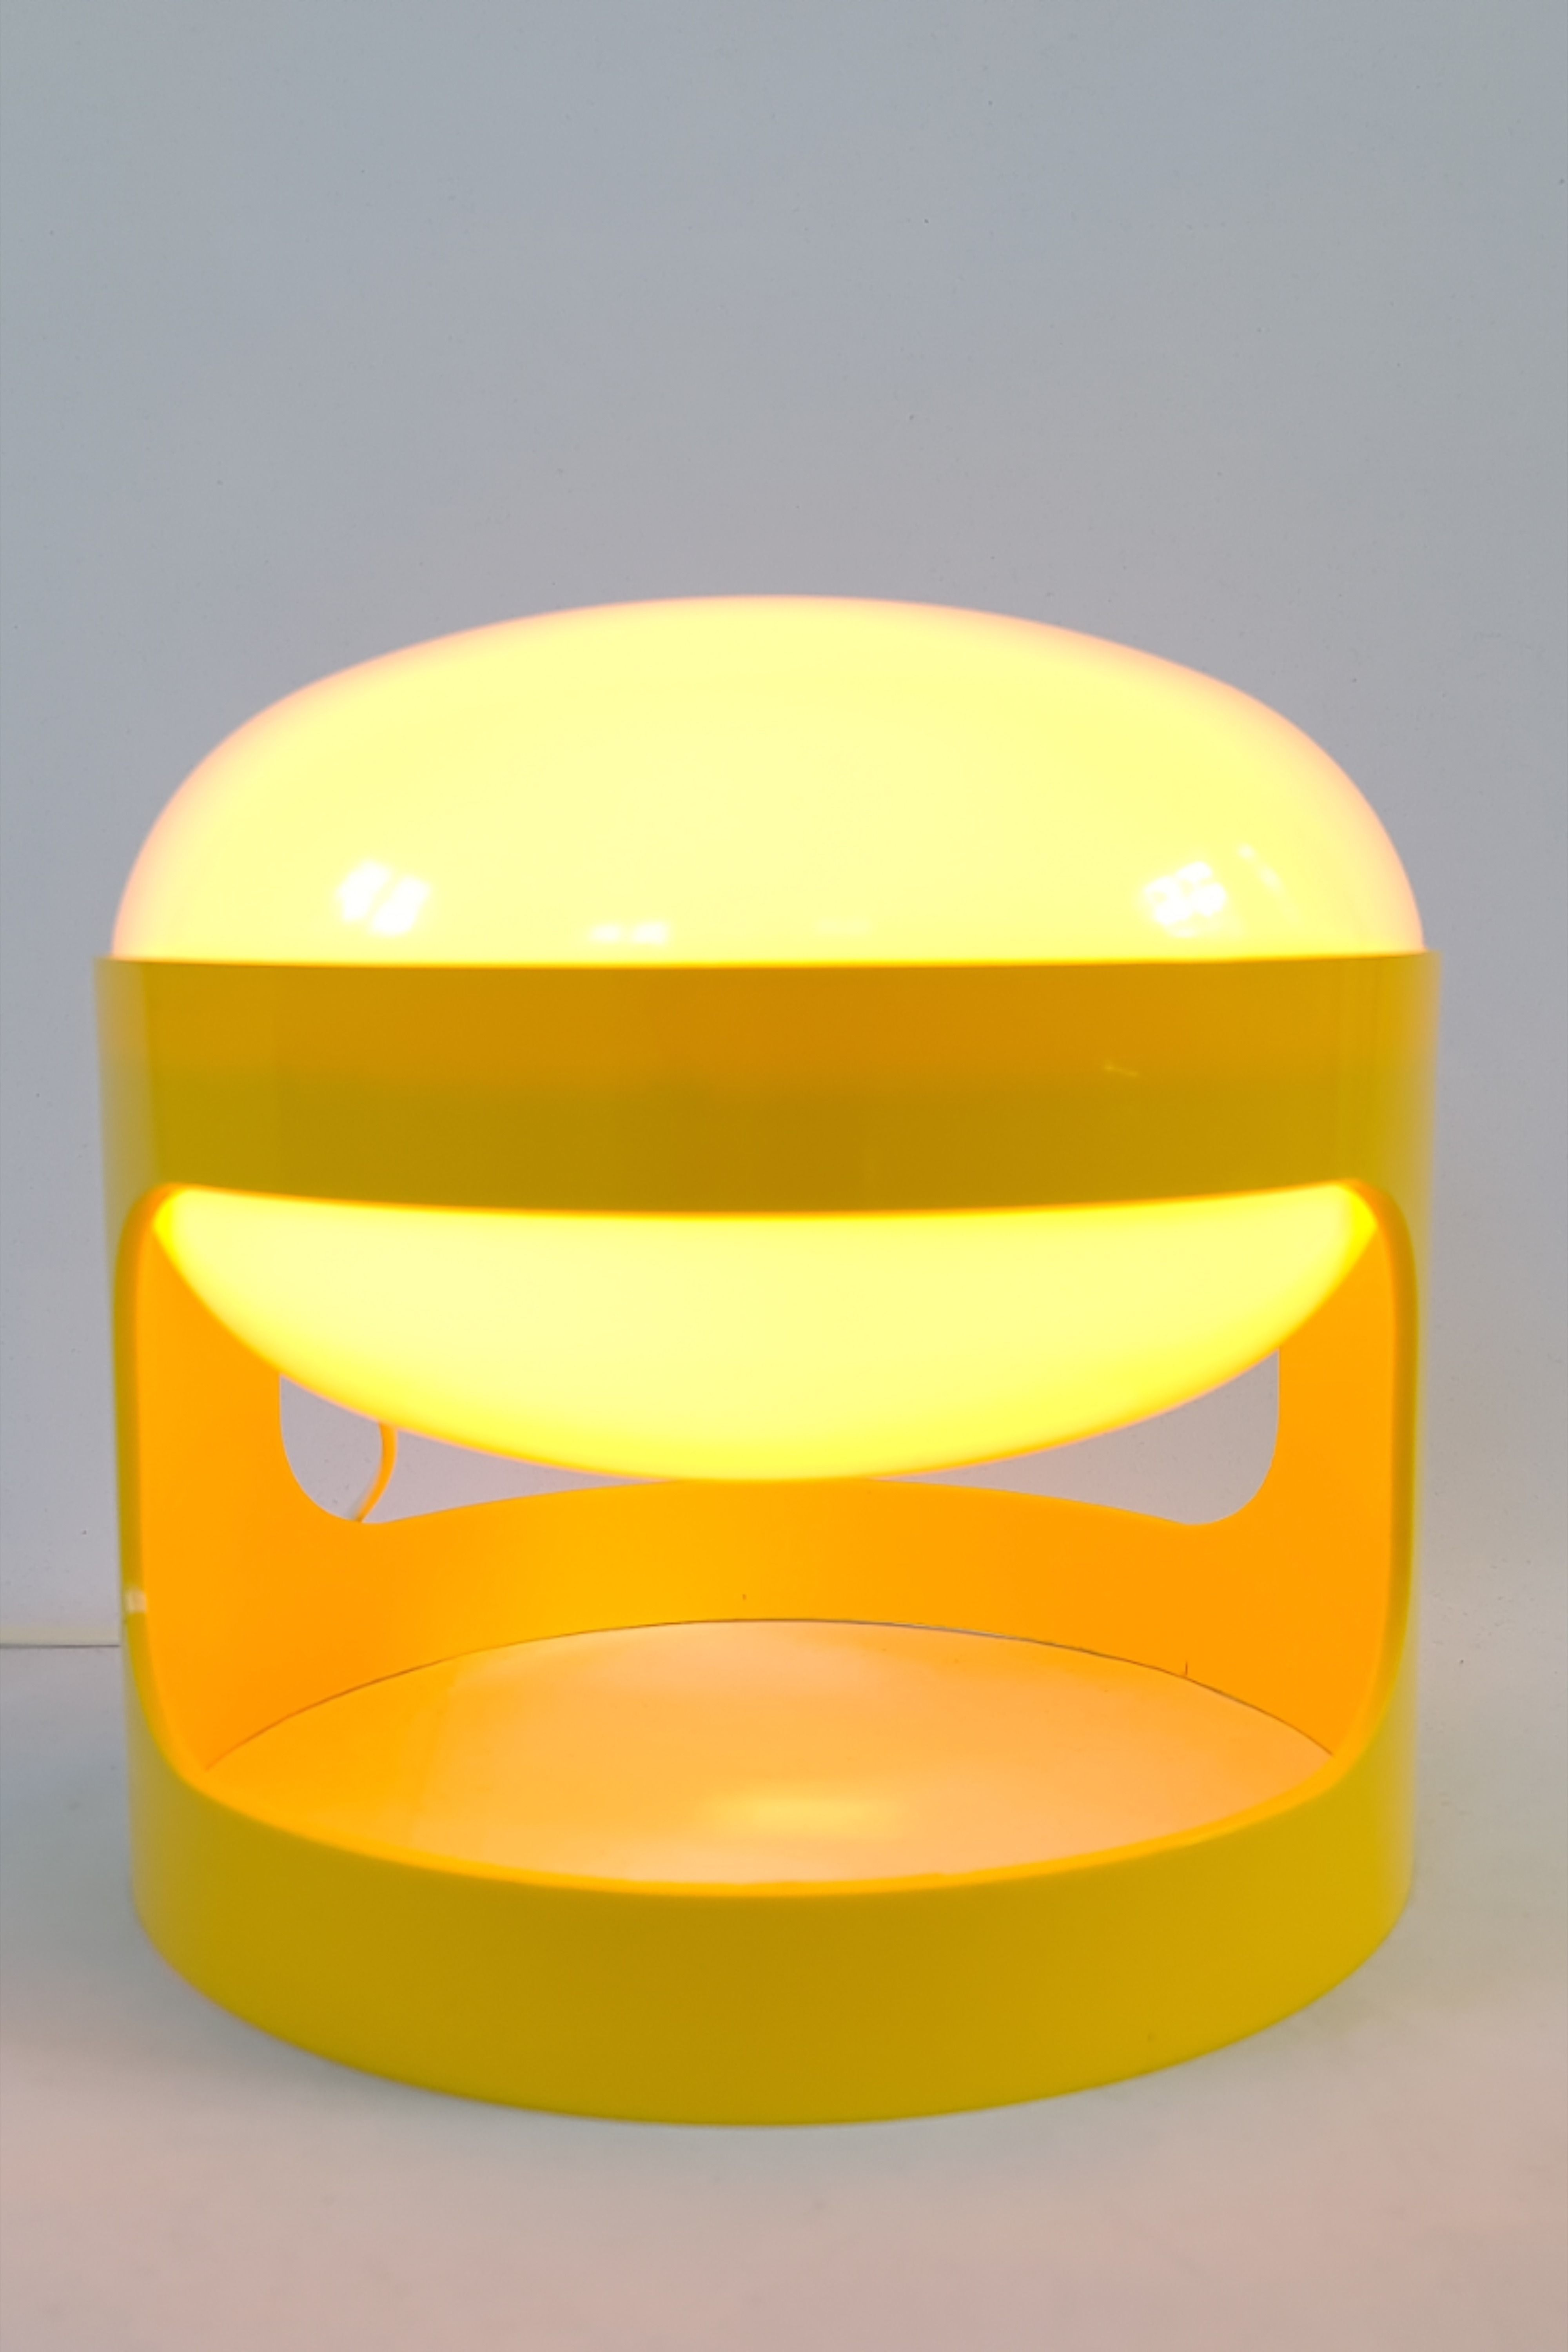 Space Age Table Lamp Kd 27 Designed By Joe Colombo For Kartell Italy Made By Husqvarna Sweden 1960s Midcentury In 2020 Kartell Design Yellow Table Lamp